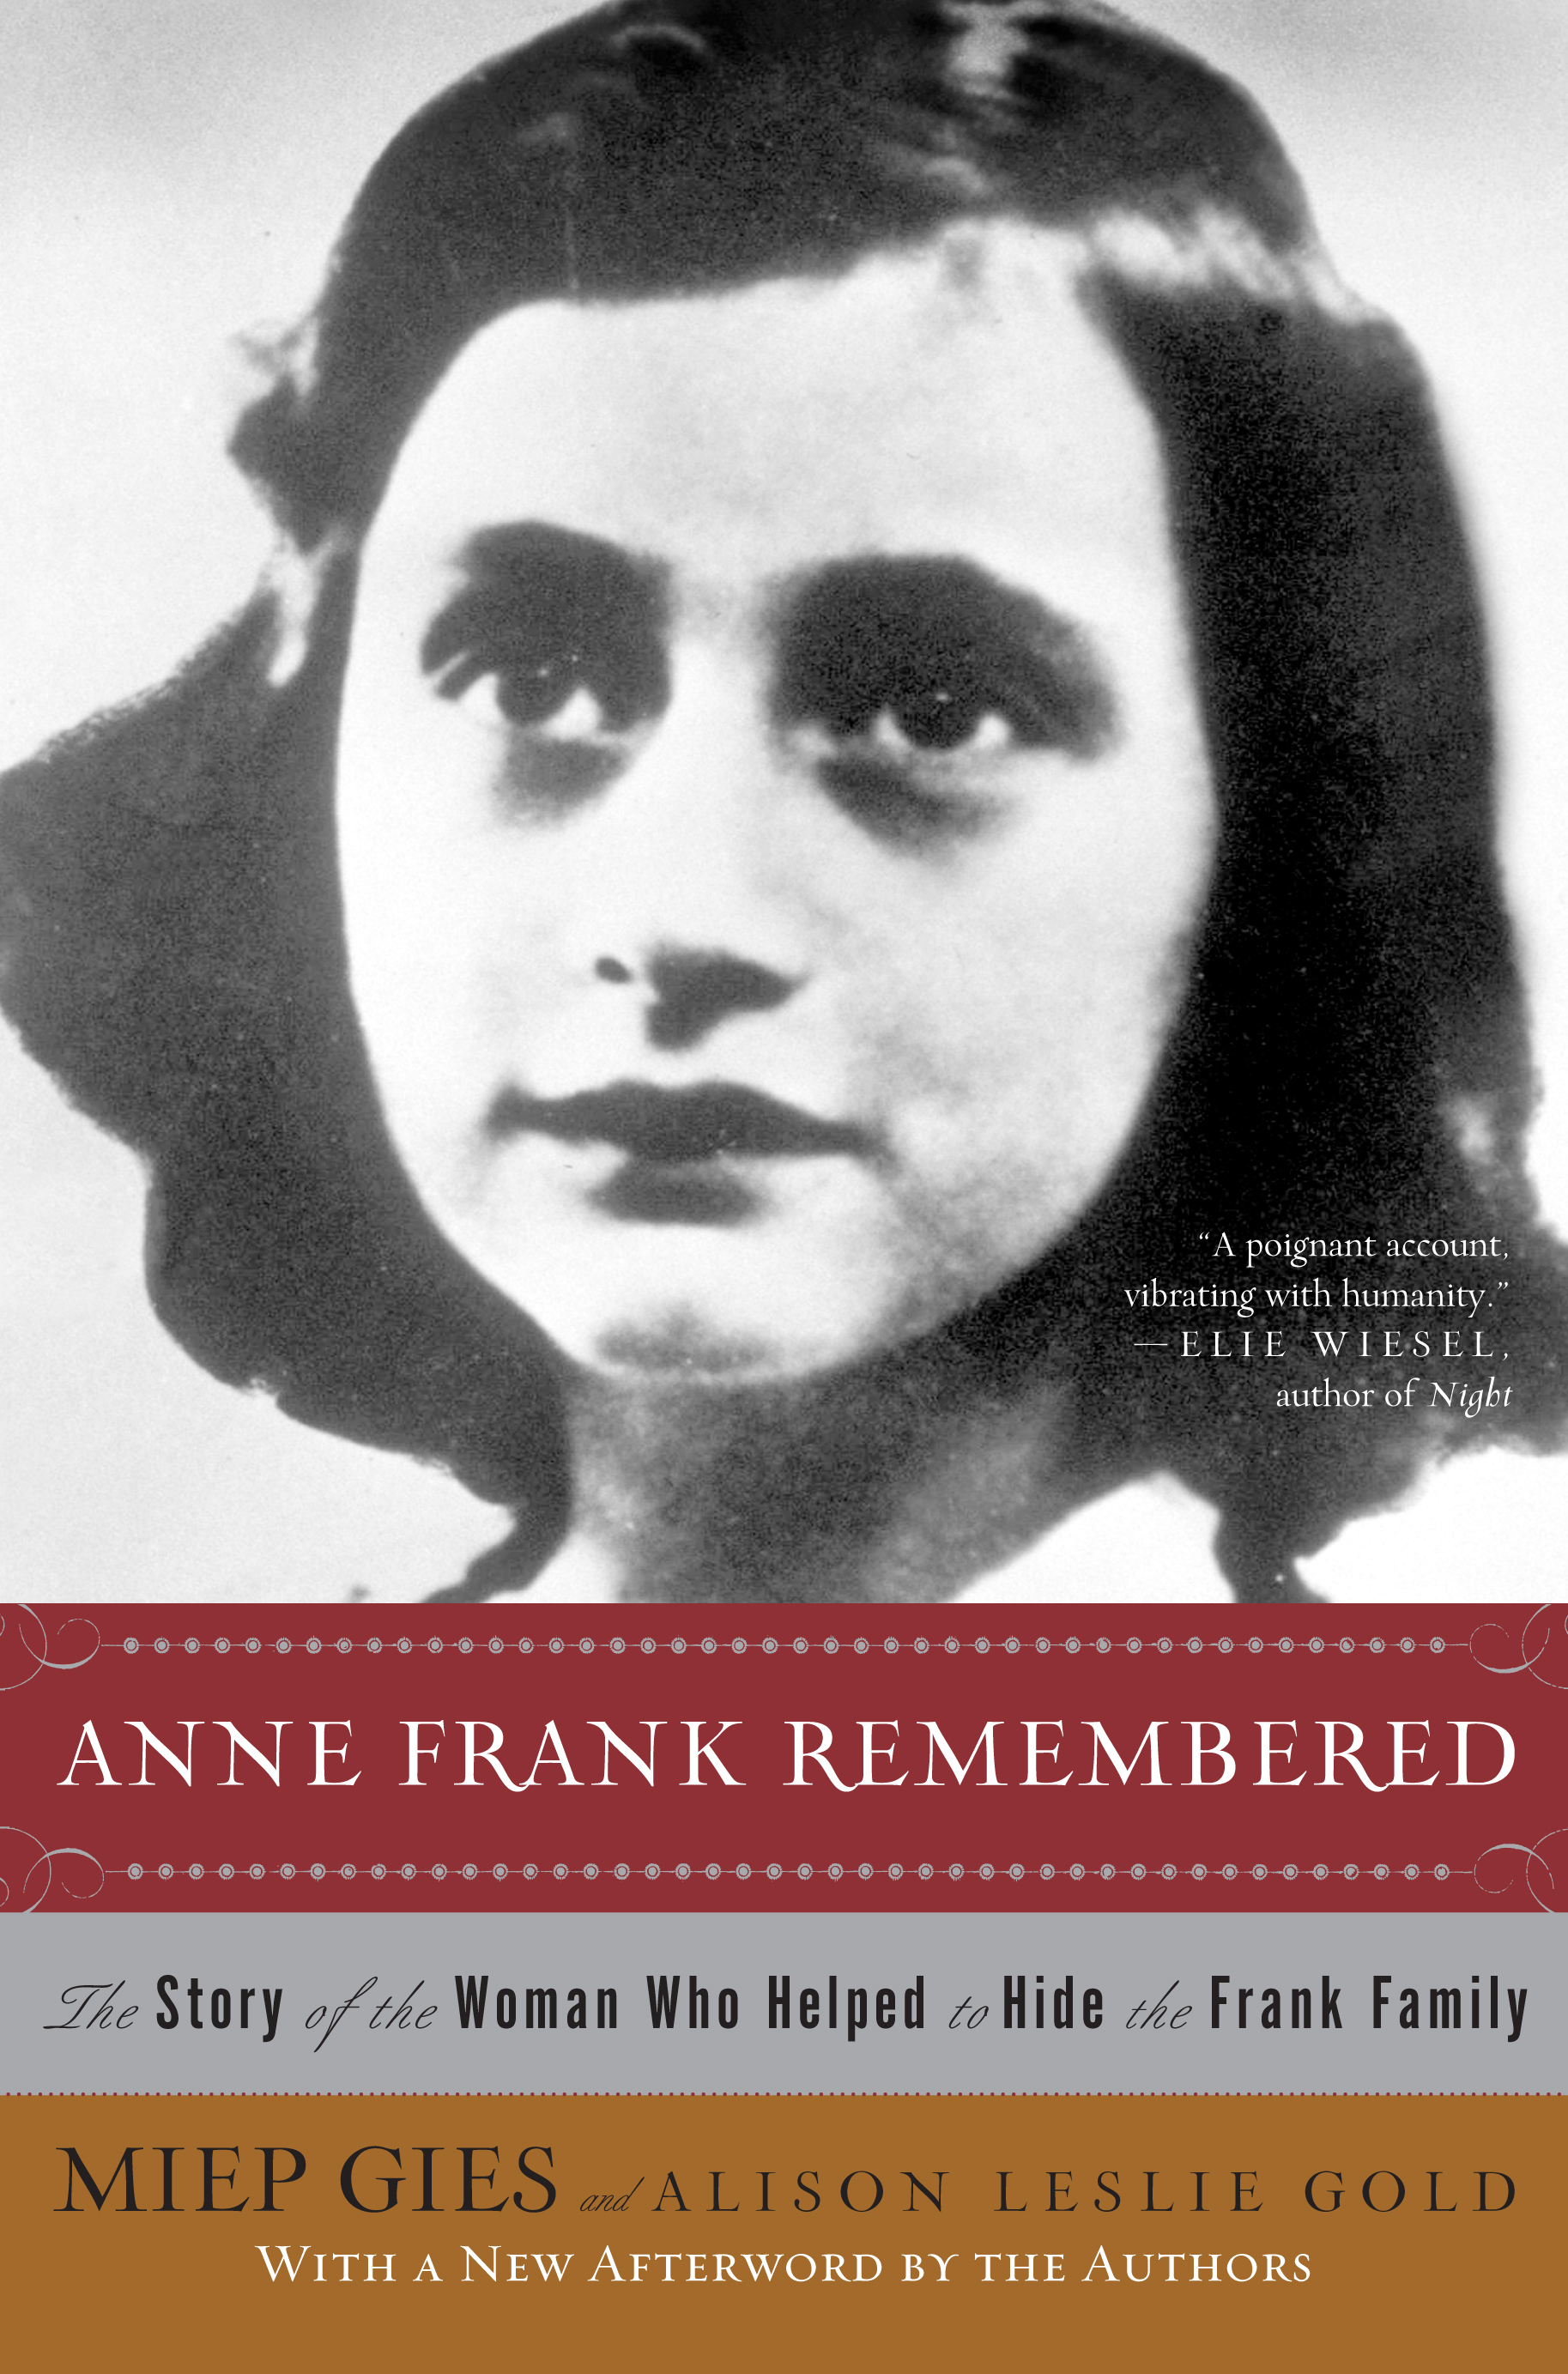 Image of: Ladd Book Cover Image jpg Anne Frank Remembered Simon Schuster Anne Frank Remembered Book By Miep Gies Alison Leslie Gold